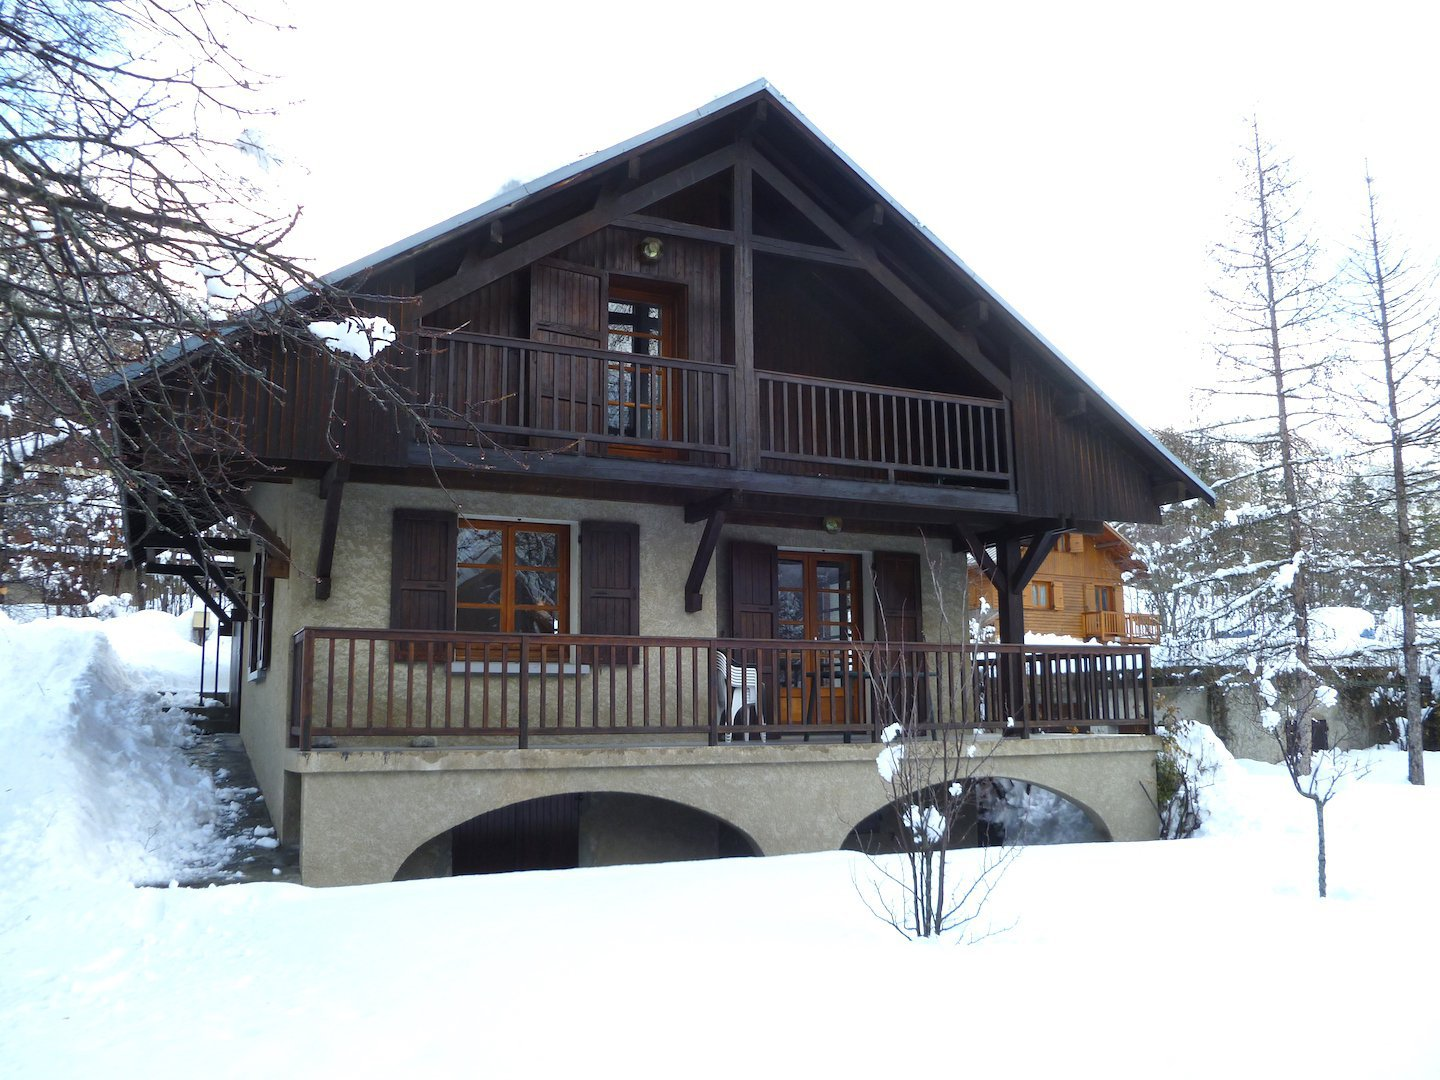 chalet aigliere and garden in winter